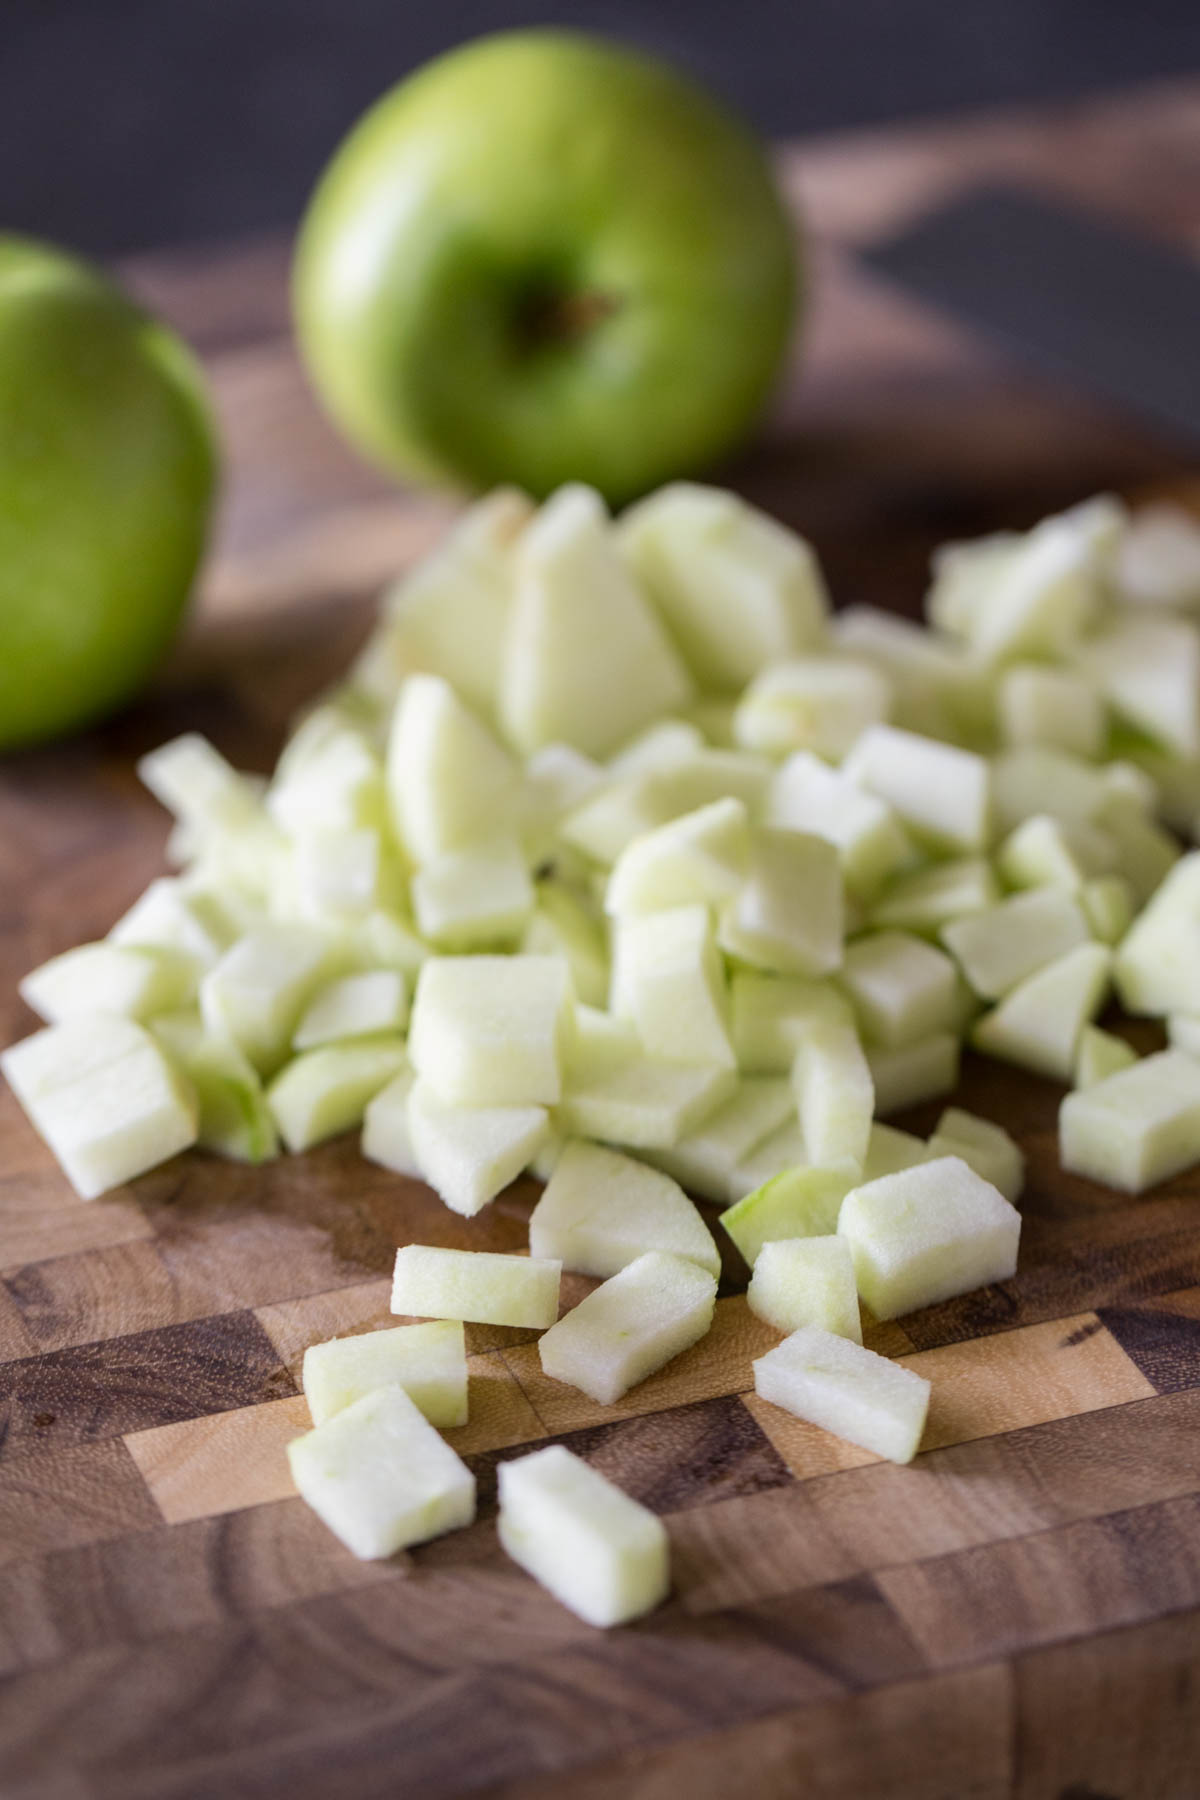 Peeled and chopped Granny Smith apples on a cutting board, with whole apples in the background.